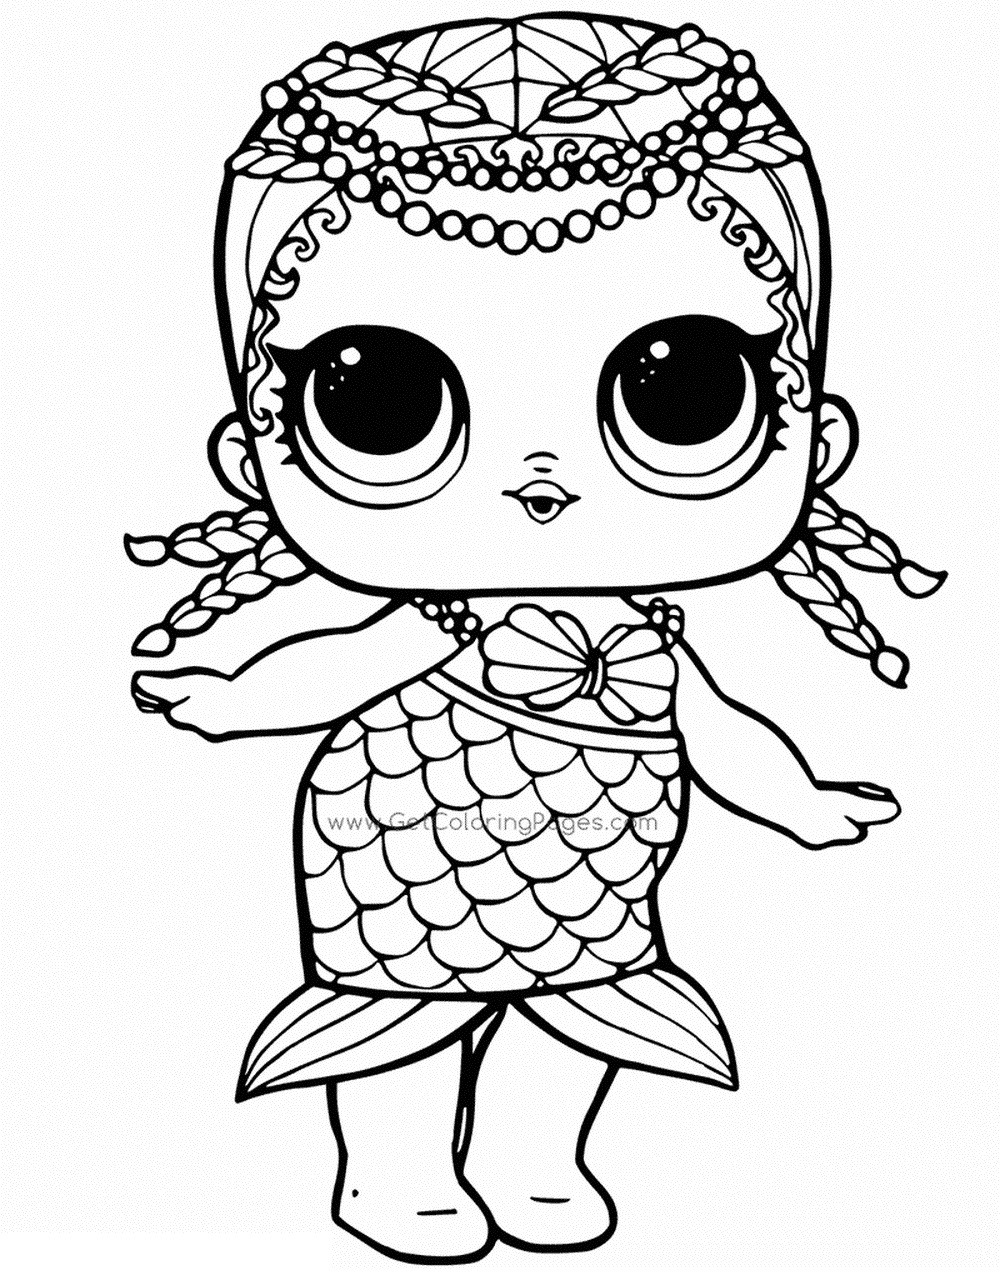 Coloring Page ~ Coloring Page Lol Surprise Dolls Pages Print Them